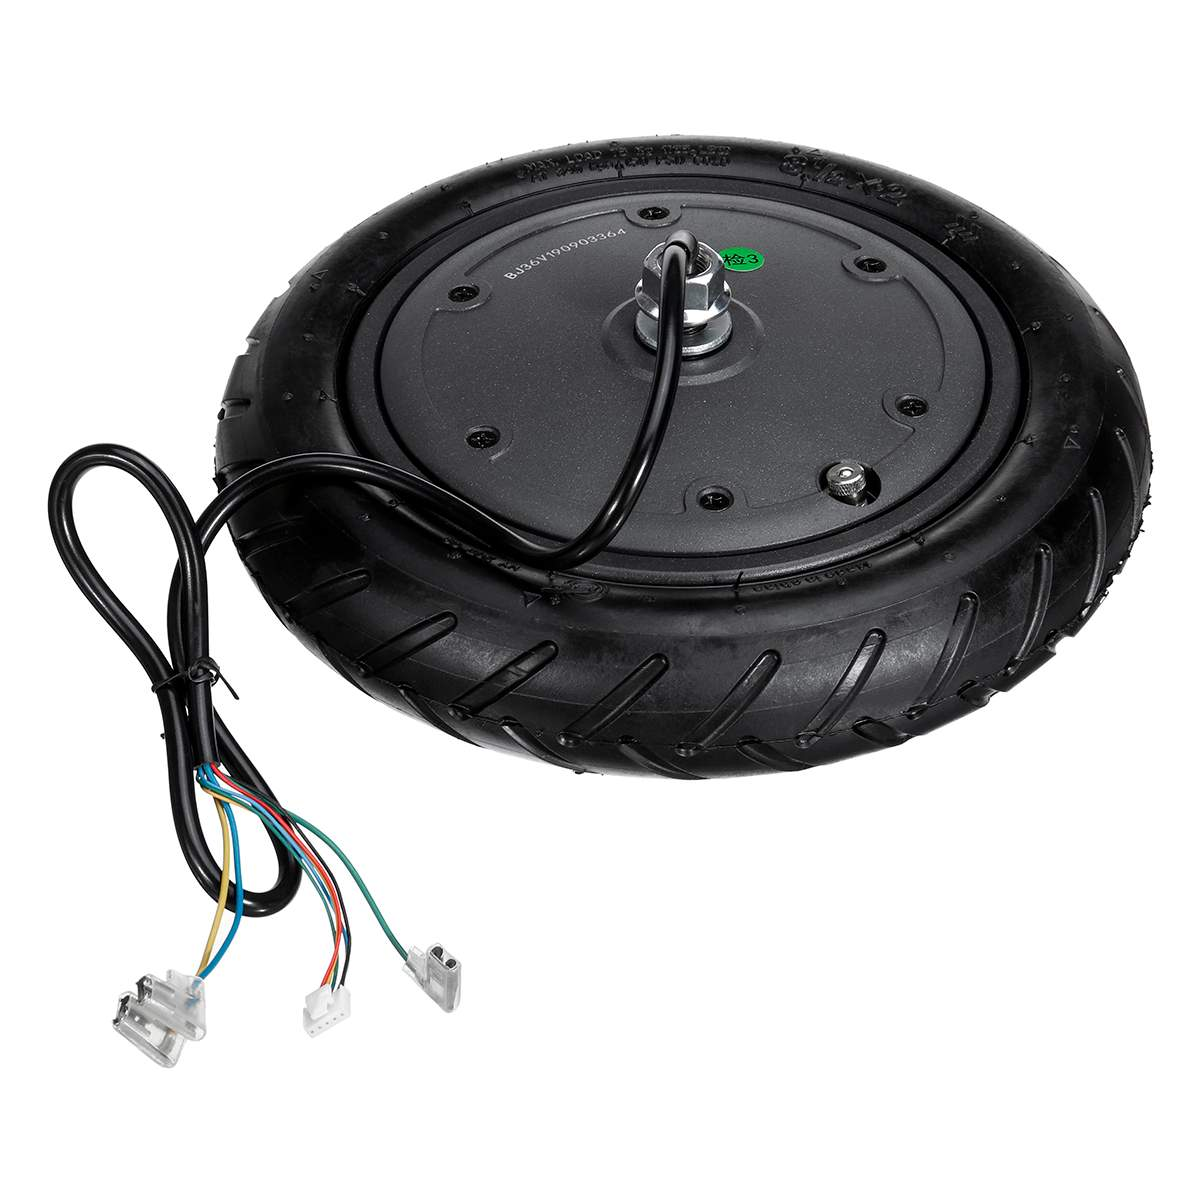 350W Replacement Electric Scooter Wheel Motor Explosion Proof Wheel Tire for Xiaomi M365 Electric Scooter Parts